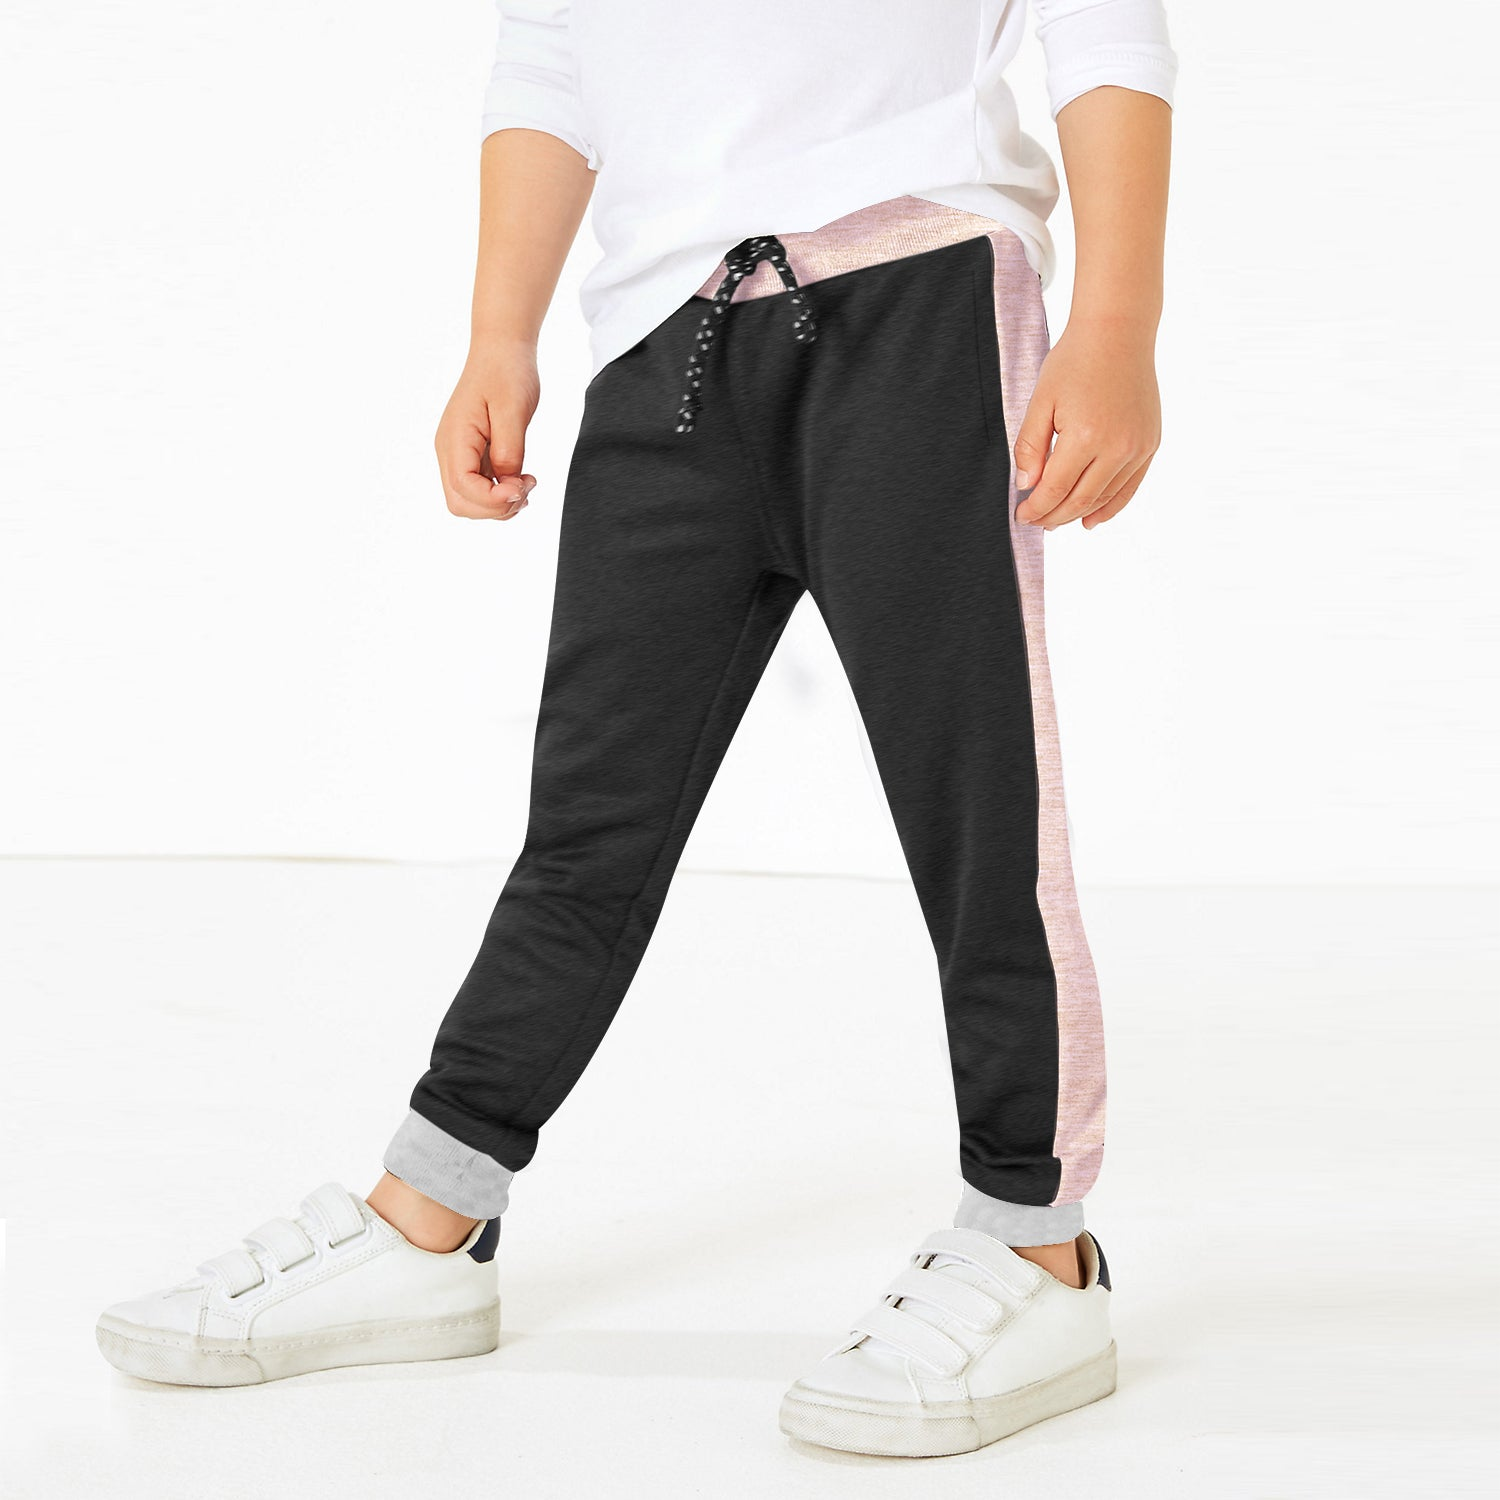 Uneek Single Jersey Jogger Trouser For Boys-Charcoal & Pink Melange-BE10880